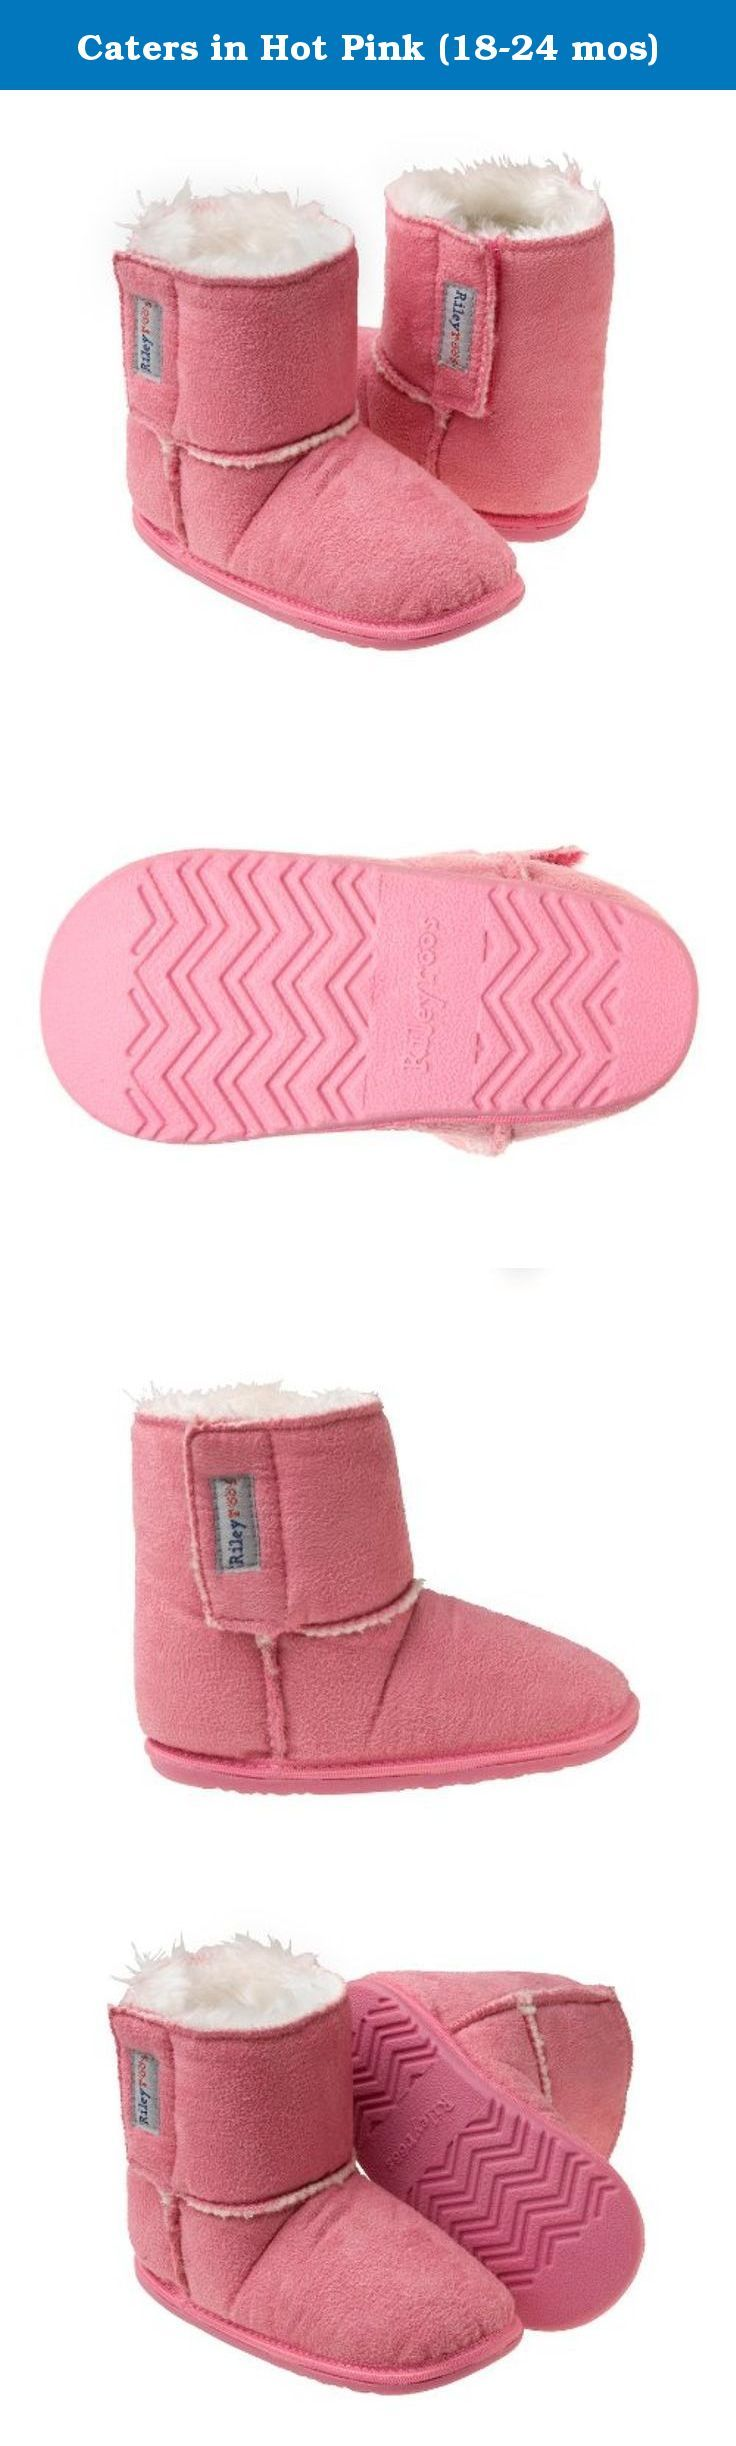 Caters in Hot Pink (18-24 mos). Rileyroos cozy boots will keep little feet warm, protected and stylish! Soft textile uppers with complimentary stitching and a warm fleece inner. Flexible rubber soles to protect little feet, while protecting little feet. What makes this style extra special - they are vegan, no animal byproducts are used on the boots! Keep boots looking as good as the day you bought them, by machine or hand washing.